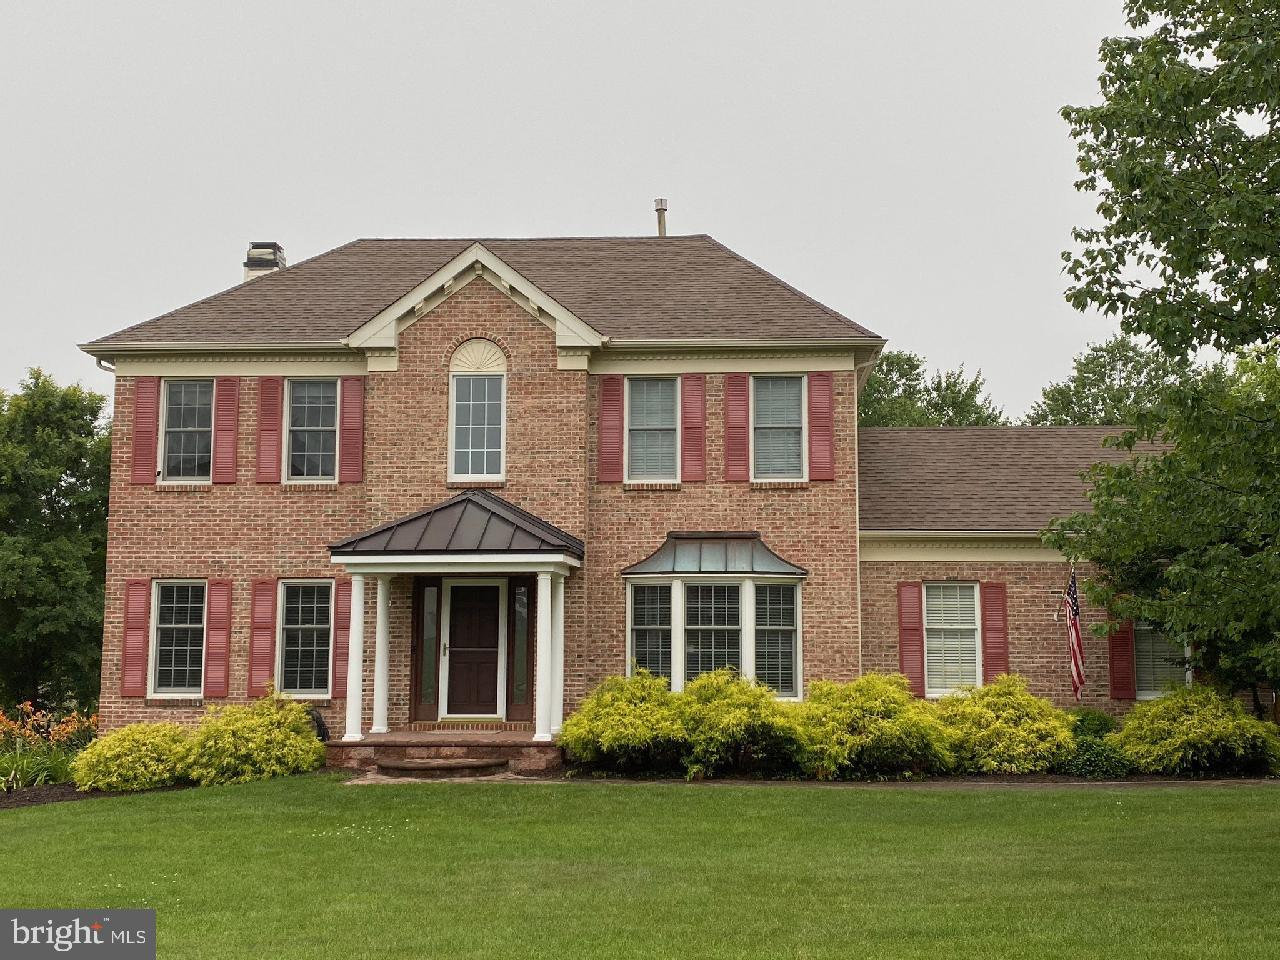 This just may be the perfect entertainer's residence!  Over $275,000 in upgrades since owned, (see upgrade list in documents tab).  entering through the covered front door, your guests are first inspired by the two story entry.  Stepping through the center hall, you will come into the chef's paradise with all new granite counter tops and matching island.  Upgraded appliances throughout with storage everywhere you turn.  Then, it is onto the covered deck with an infrared  heater and drop down curtains to keep the sun or rain at bay.  Wonderfully entertaining can be had there or just to the right on the deck towards the stairs that lead to the paver walkway to your own inground pool with jetted spa and a Fastline Pro Swimming Machine (think of it as an endless lap pool, no one has been able to overcome the highest setting yet.  Maybe you will!)  The grounds are completely encircled with aluminum fencing, extensive landscaping, and not one but TWO sheds.  One for all the storage you may need and one dedicated to the pool goodies.  Speaking of which, the pump was upgraded to high efficiency with Pentair Automation.  You can control the pump and pool from your phone. Oh, I almost forgot, all new windows and doors in 2011/2012.  In the finished lower level you will find a traditional Summer Kitchen with large work area, island, extra refrigerator, and separate freeze, both included in the sale of this home.  Going further you will find a large area perfect for working out and loads more storage space.  Upstairs finds the main owner's bedroom suite with remodeled full bath, three nice sized bedrooms, and a hall bath.